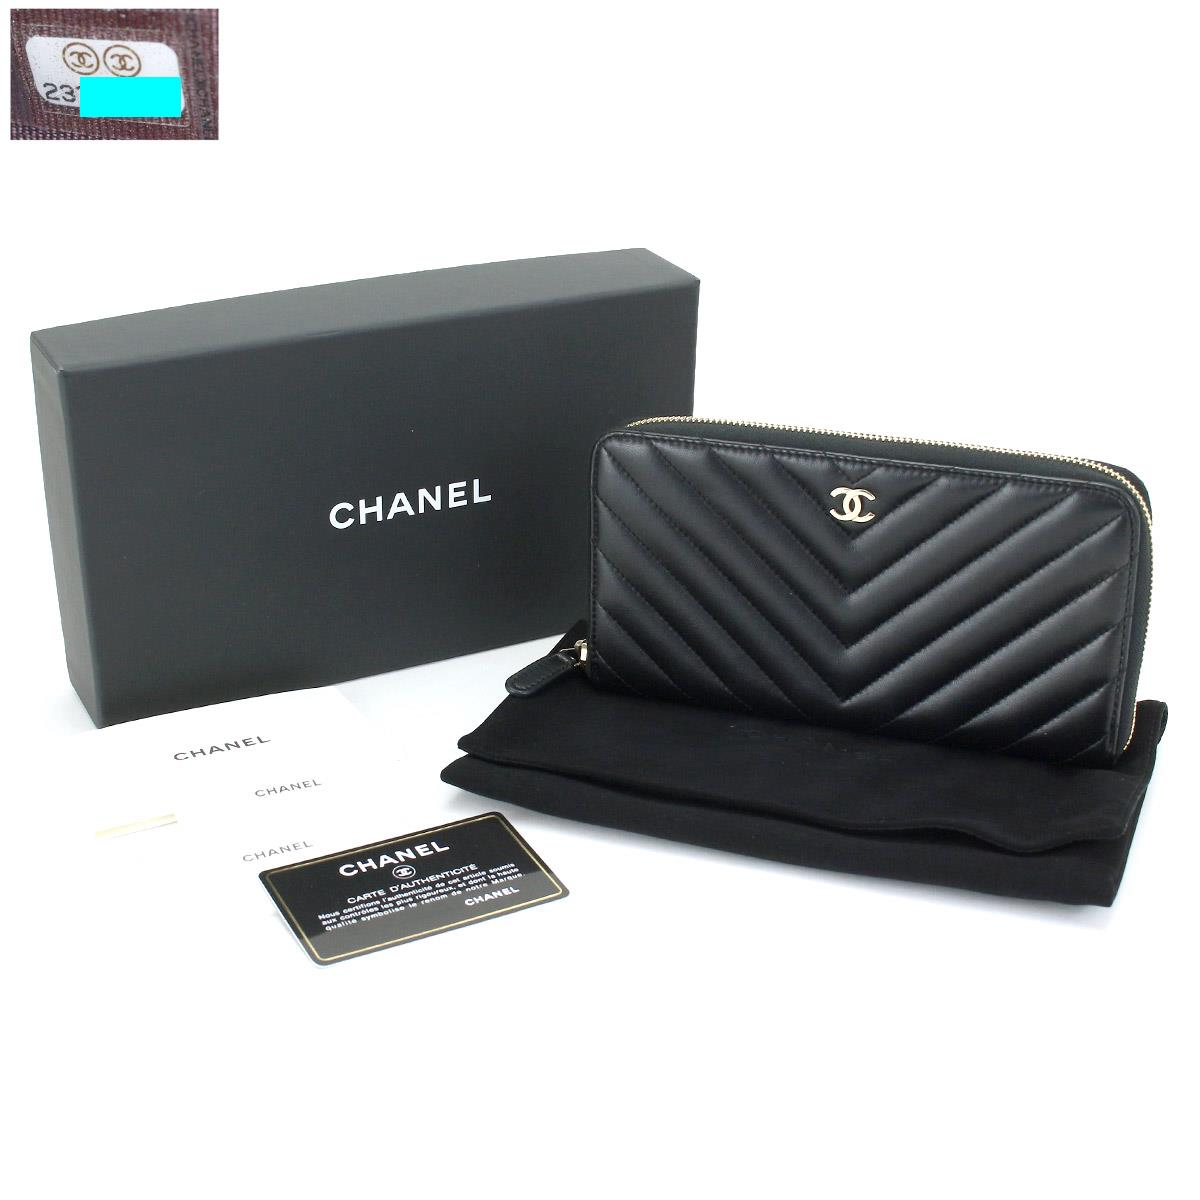 a759275aa575d7 Chanel CHANEL Chevron round fastener long wallet leather black A50097 V  stitch gold metal fittings